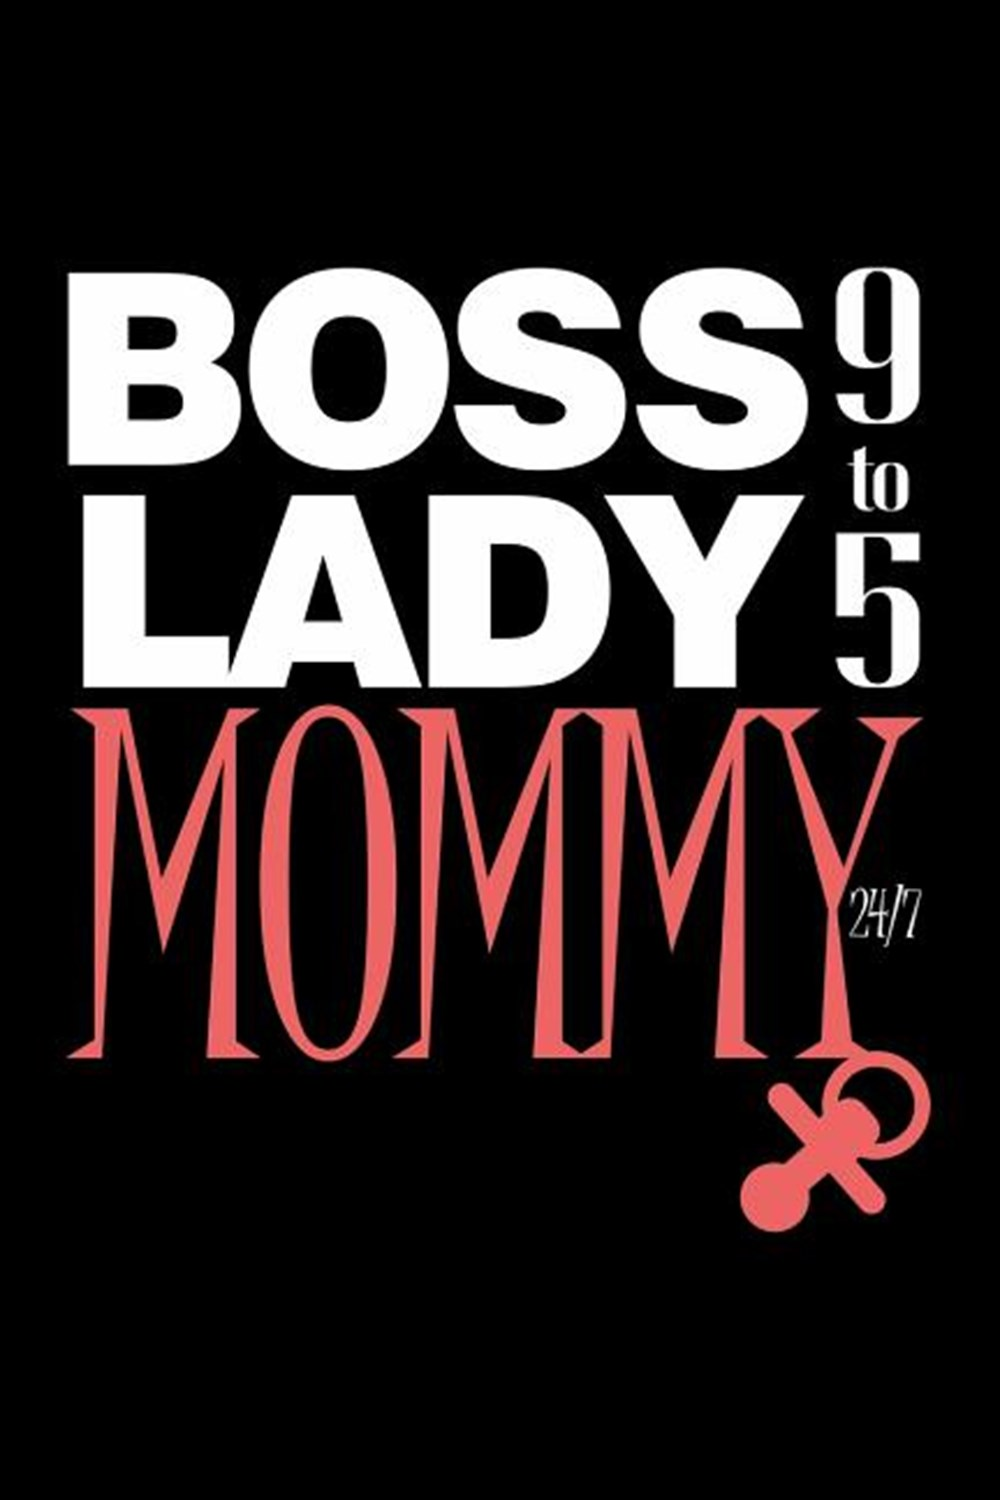 Boss Lady Mommy 9 To 5 24/7 Blank Paper Sketch Book - Artist Sketch Pad Journal for Sketching, Doodl